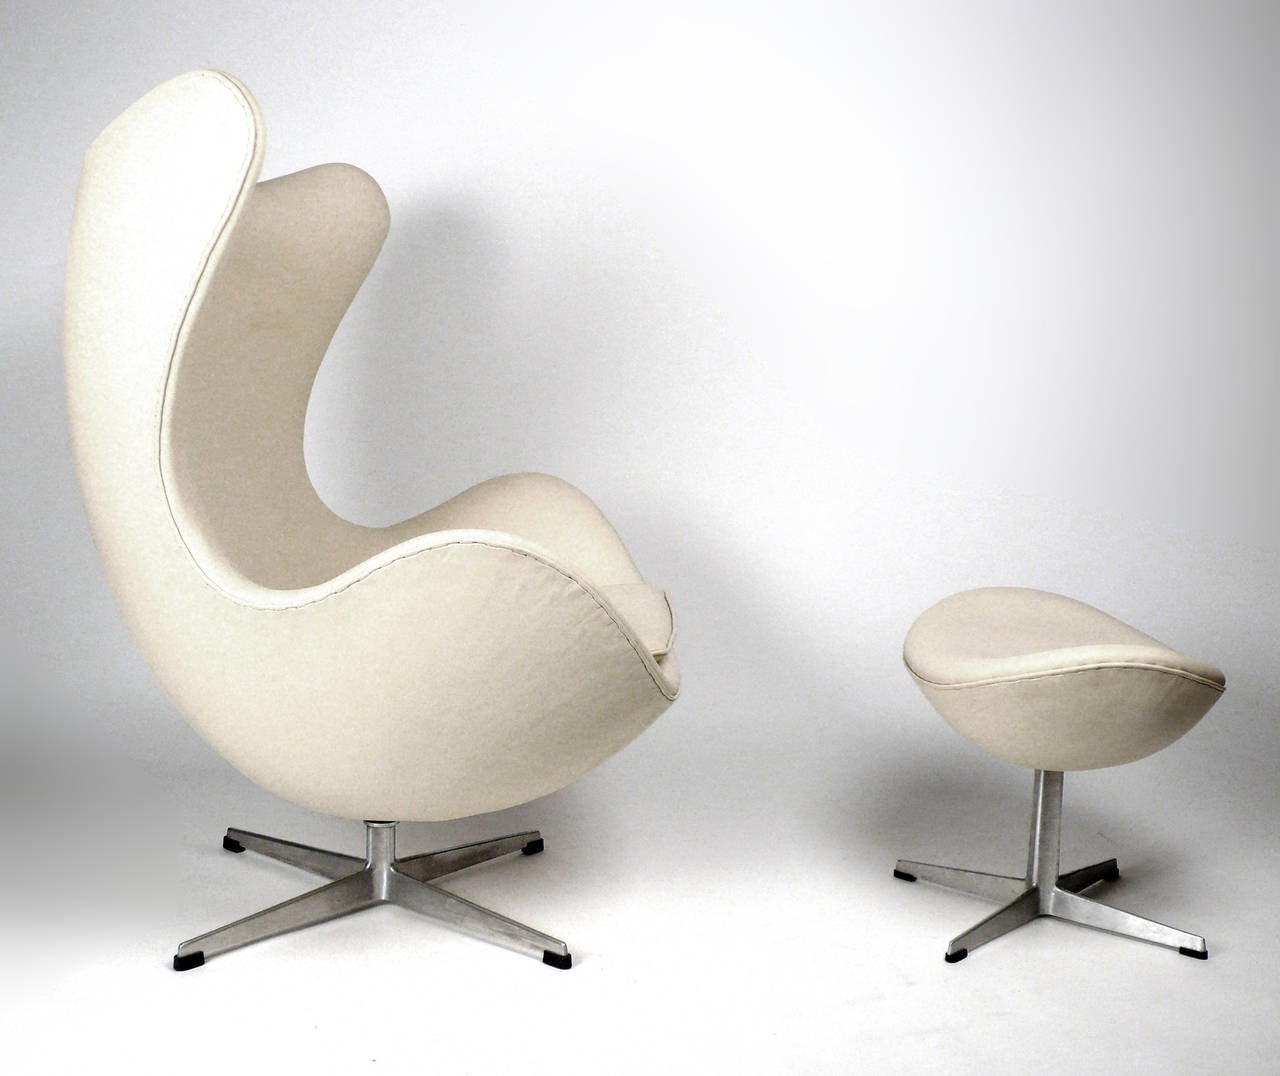 Early Production Leather Egg Chair With Ottoman By Arne